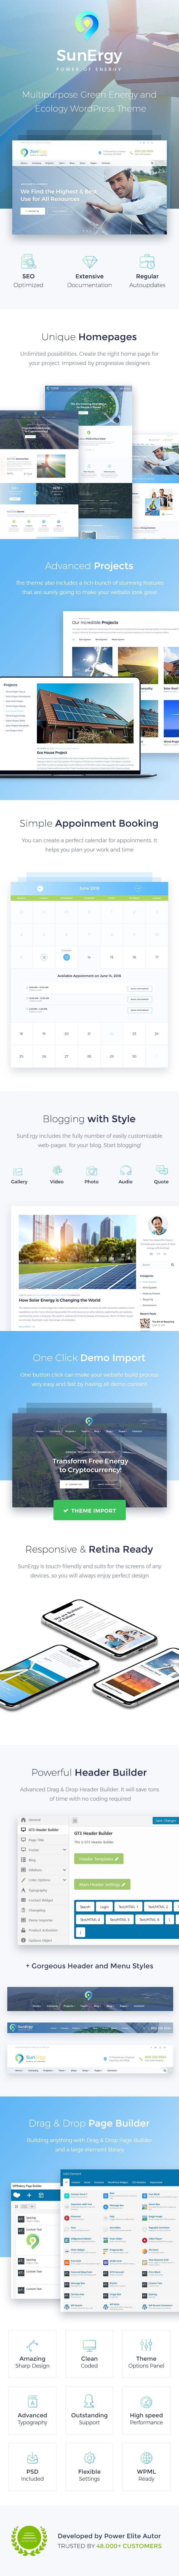 WordPress theme Sunergy - Multipurpose Green Energy and Ecology WordPress Theme (Technology)